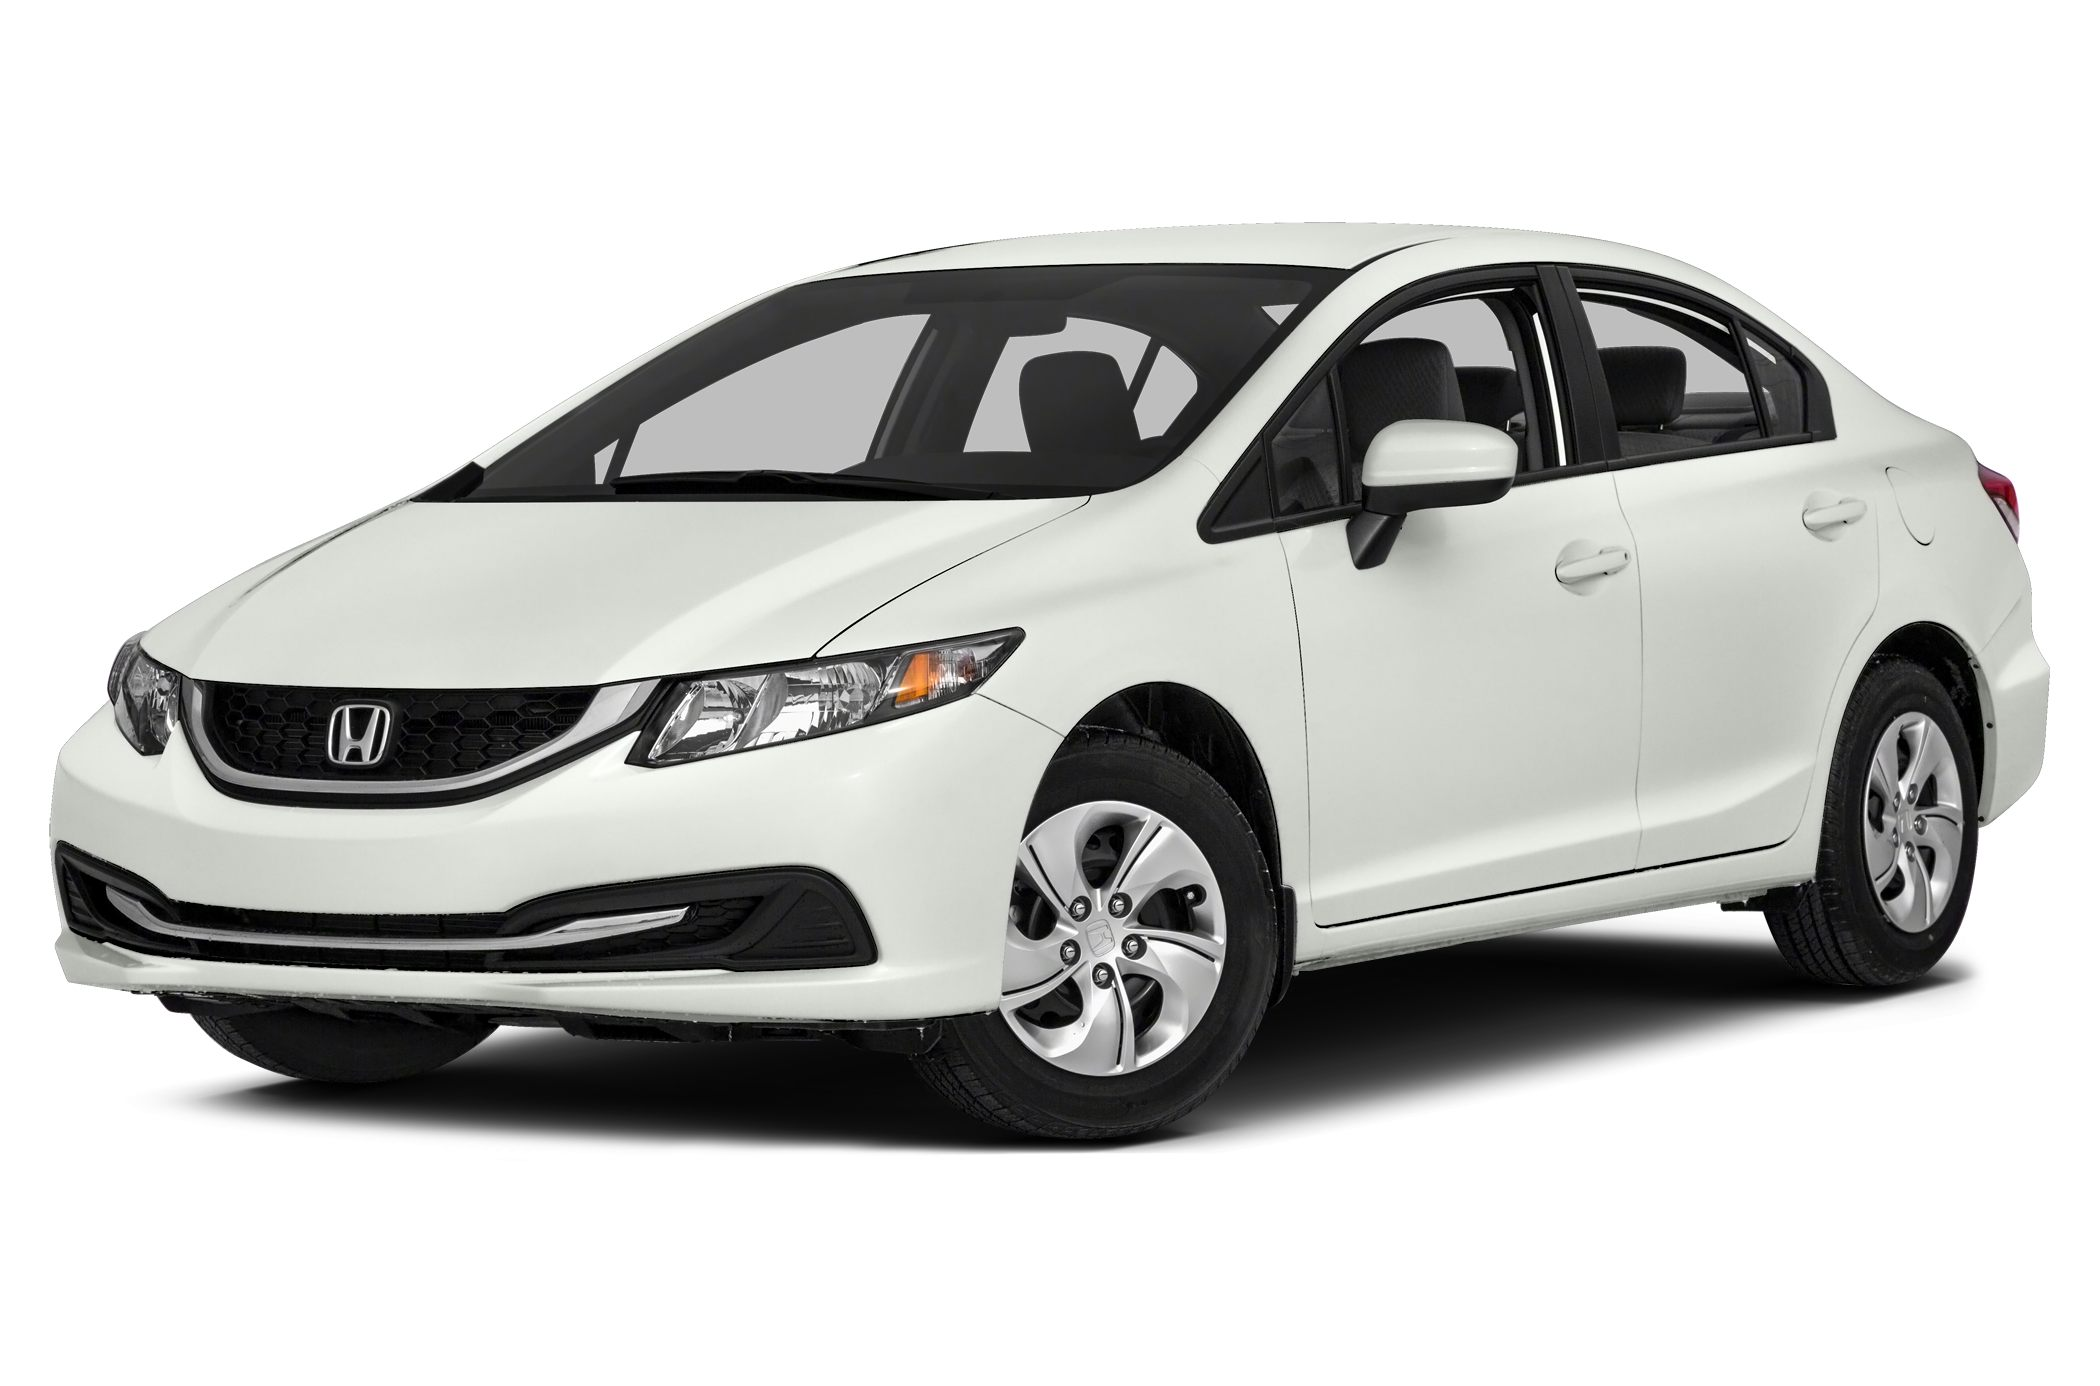 2014 Honda Civic EX Sedan for sale in Mesa for $20,587 with 10 miles.